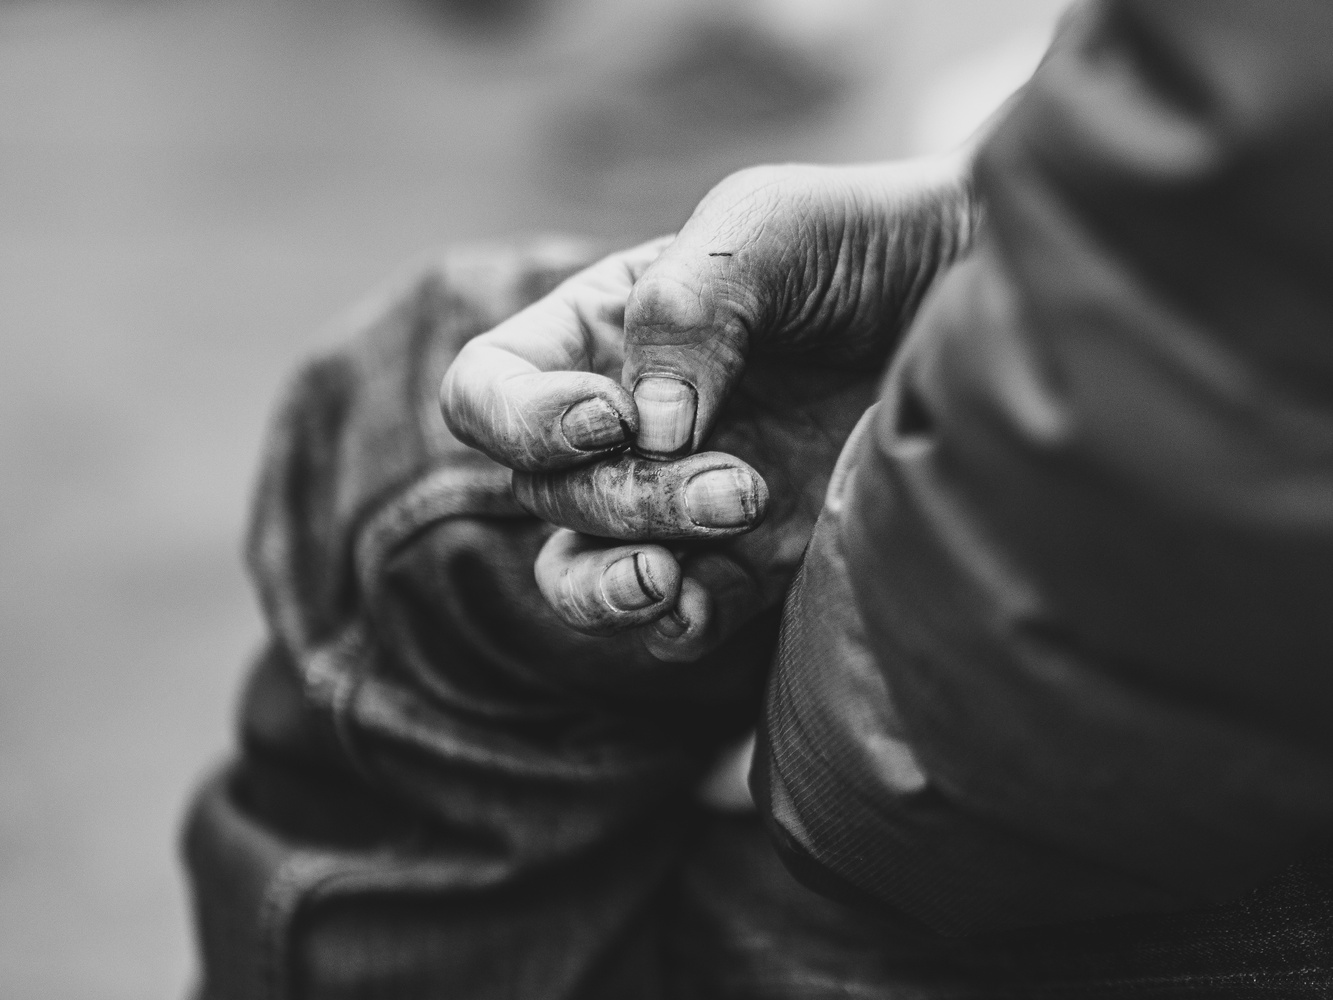 Hands by tomas doe